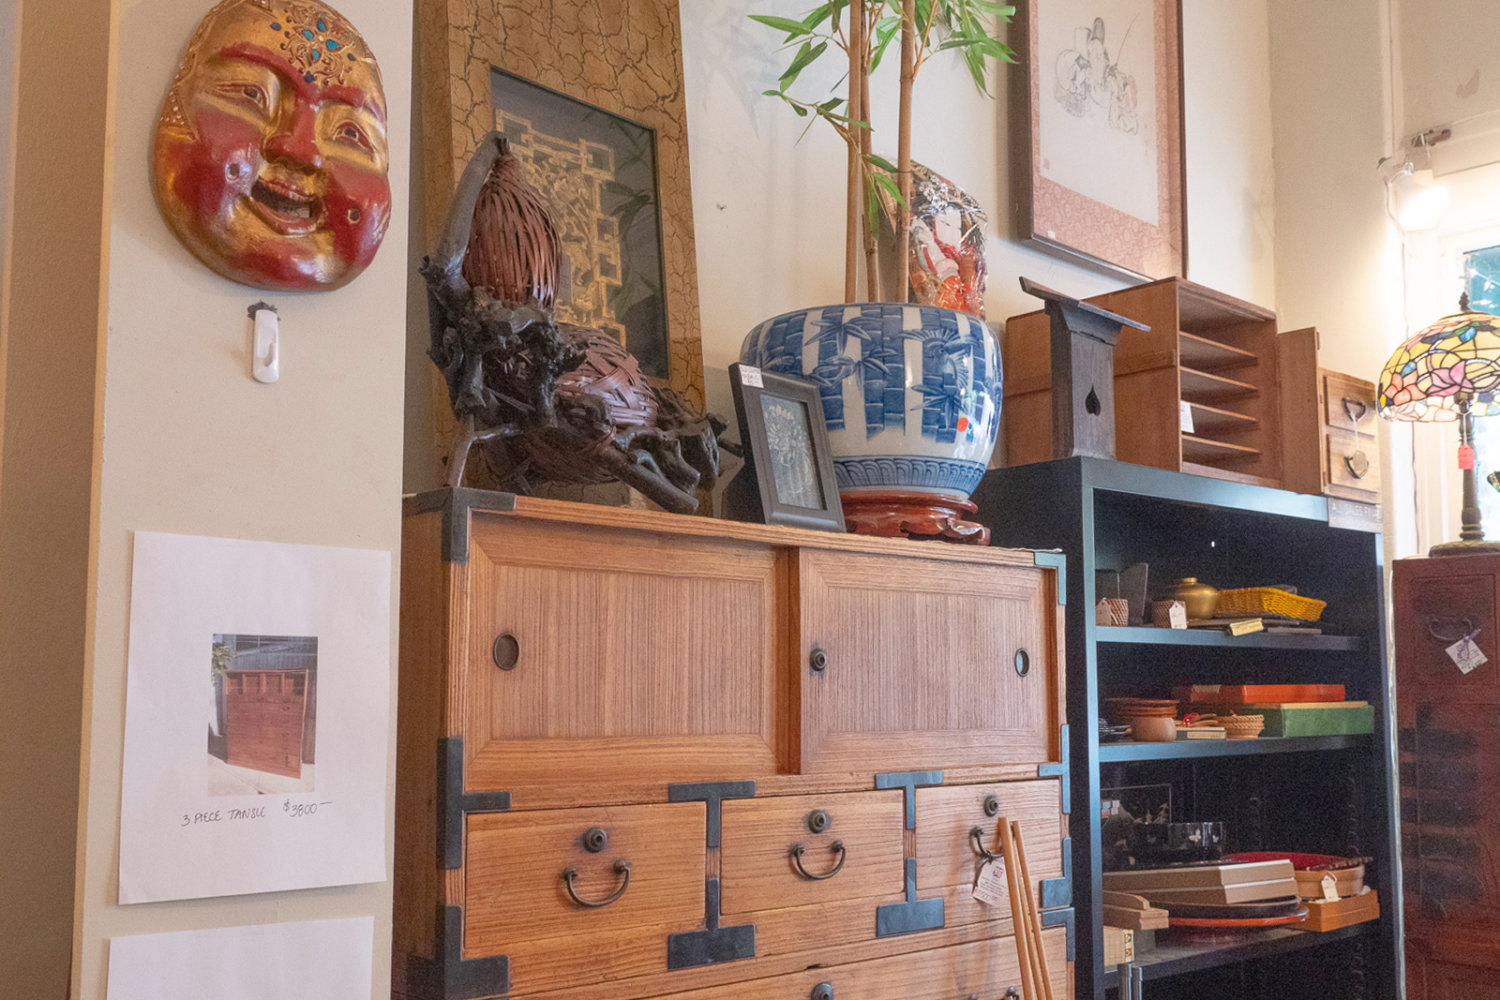 south-pasadena-news-04-23-21-Yoko-Japanese-Antiques-amp-021